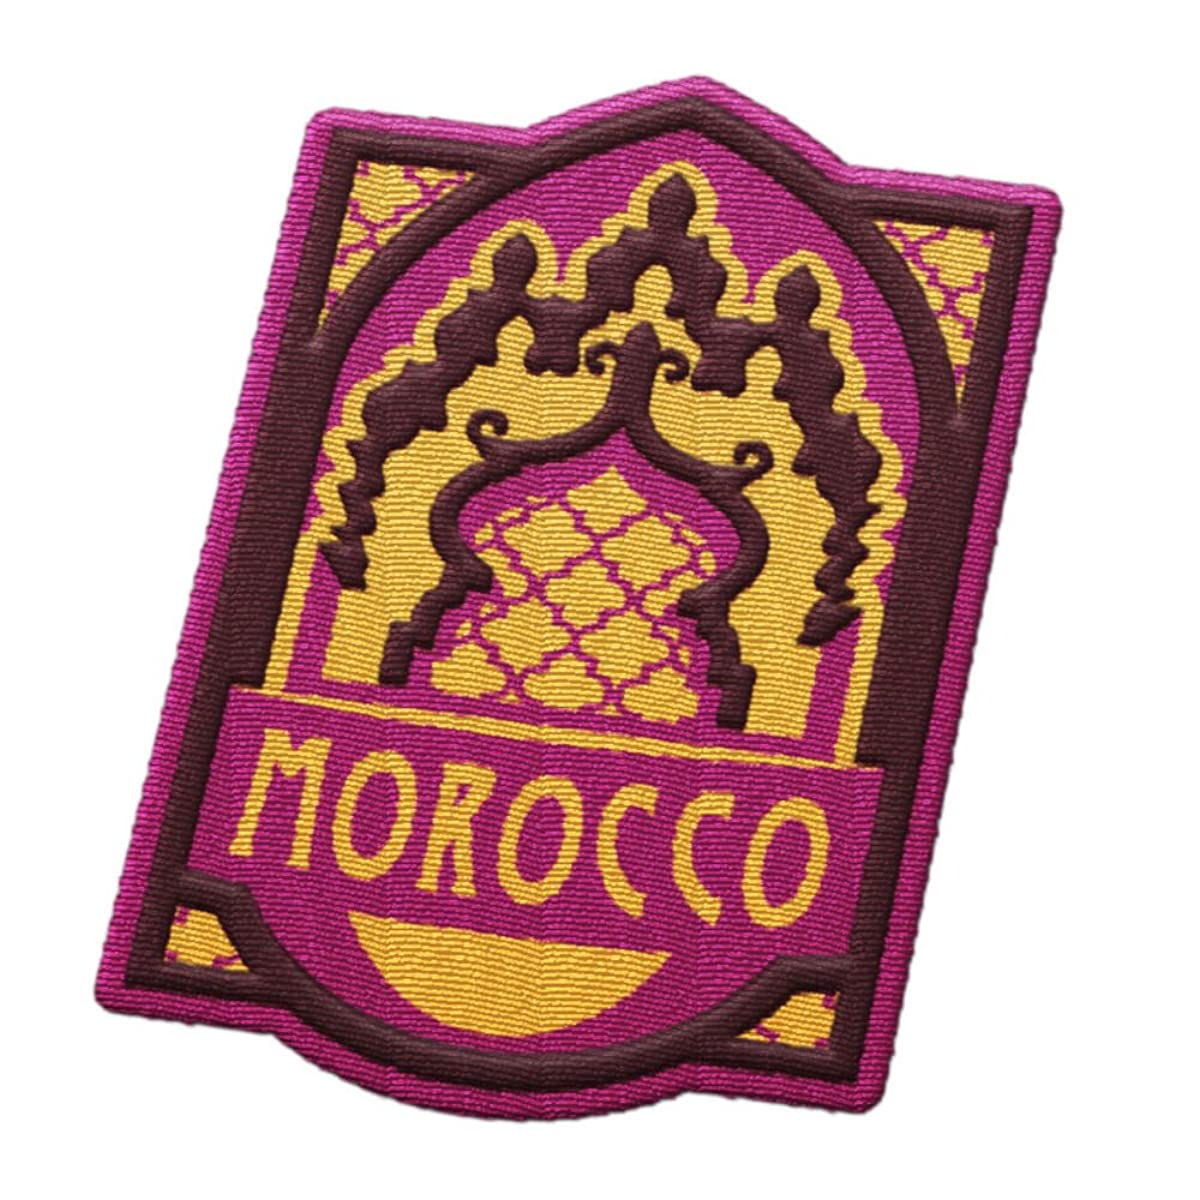 Morocco Travel Patch - Moroccan gates / Casablanca or Tangiers or Marakesh / Great souvenir for backpacks and luggage / Backpacking and travelling badge.